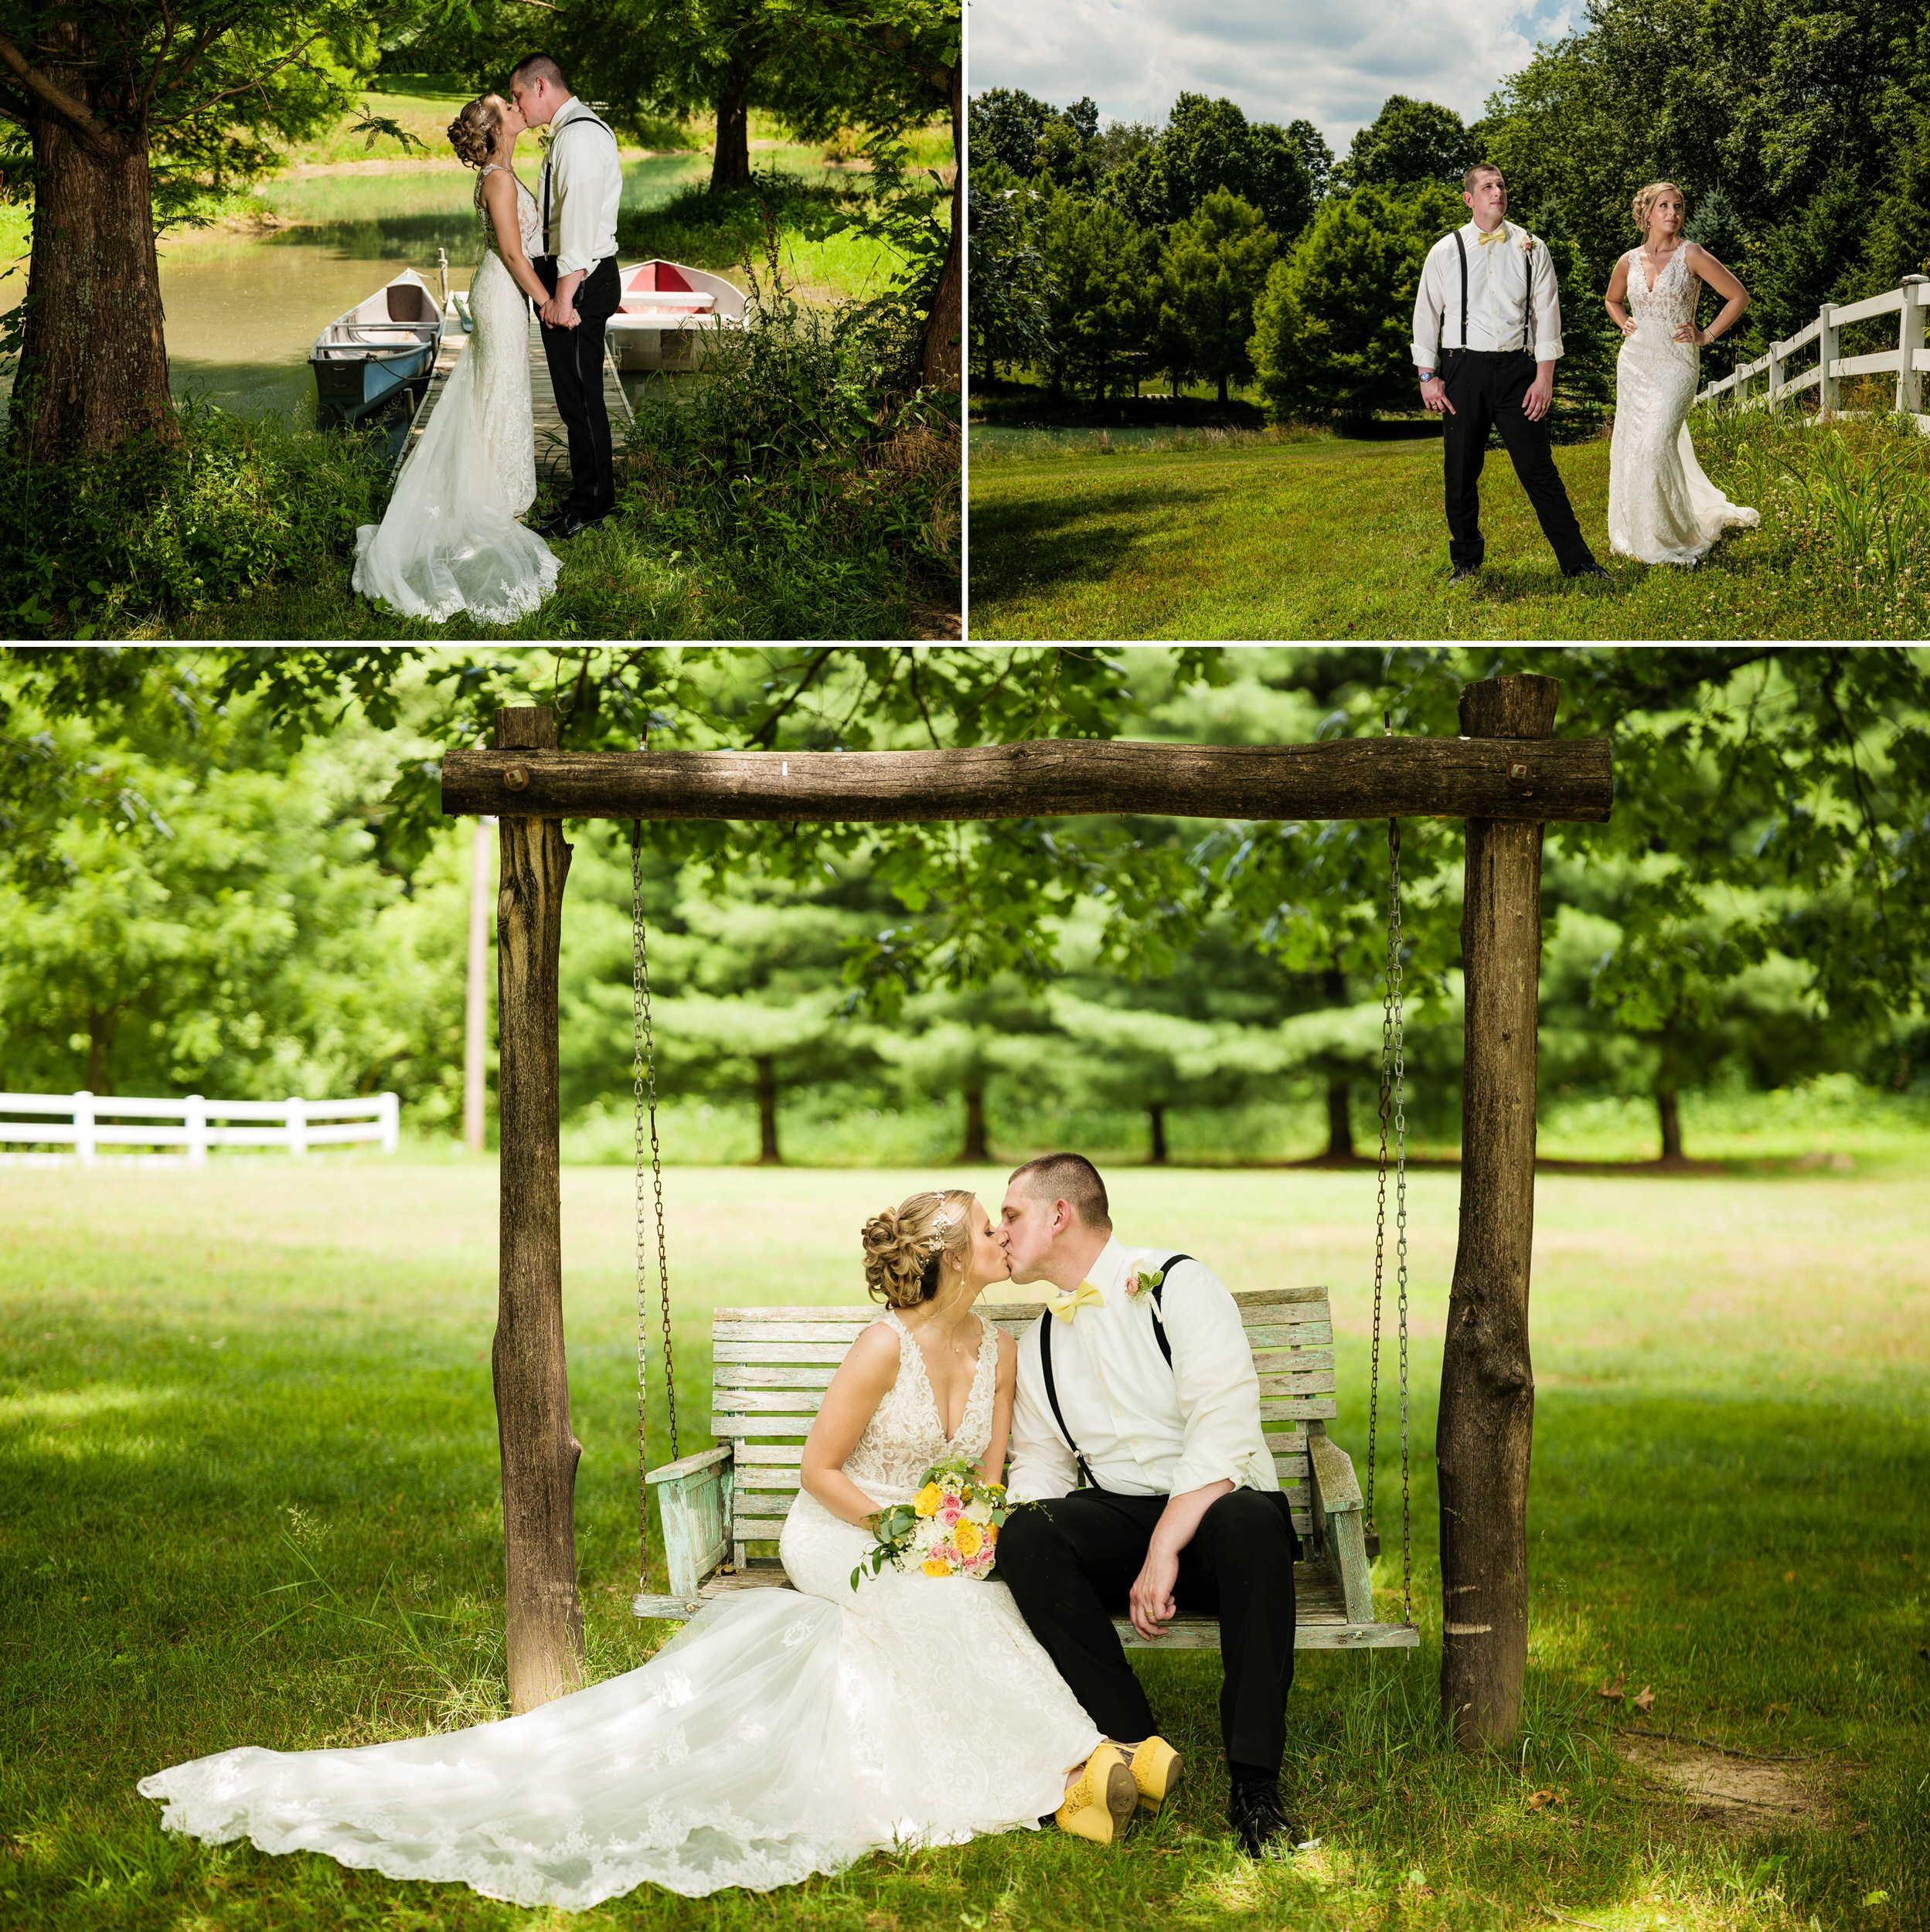 Wedding photos featuring the beautiful scenery of the grounds at Heston Hills Event Center.